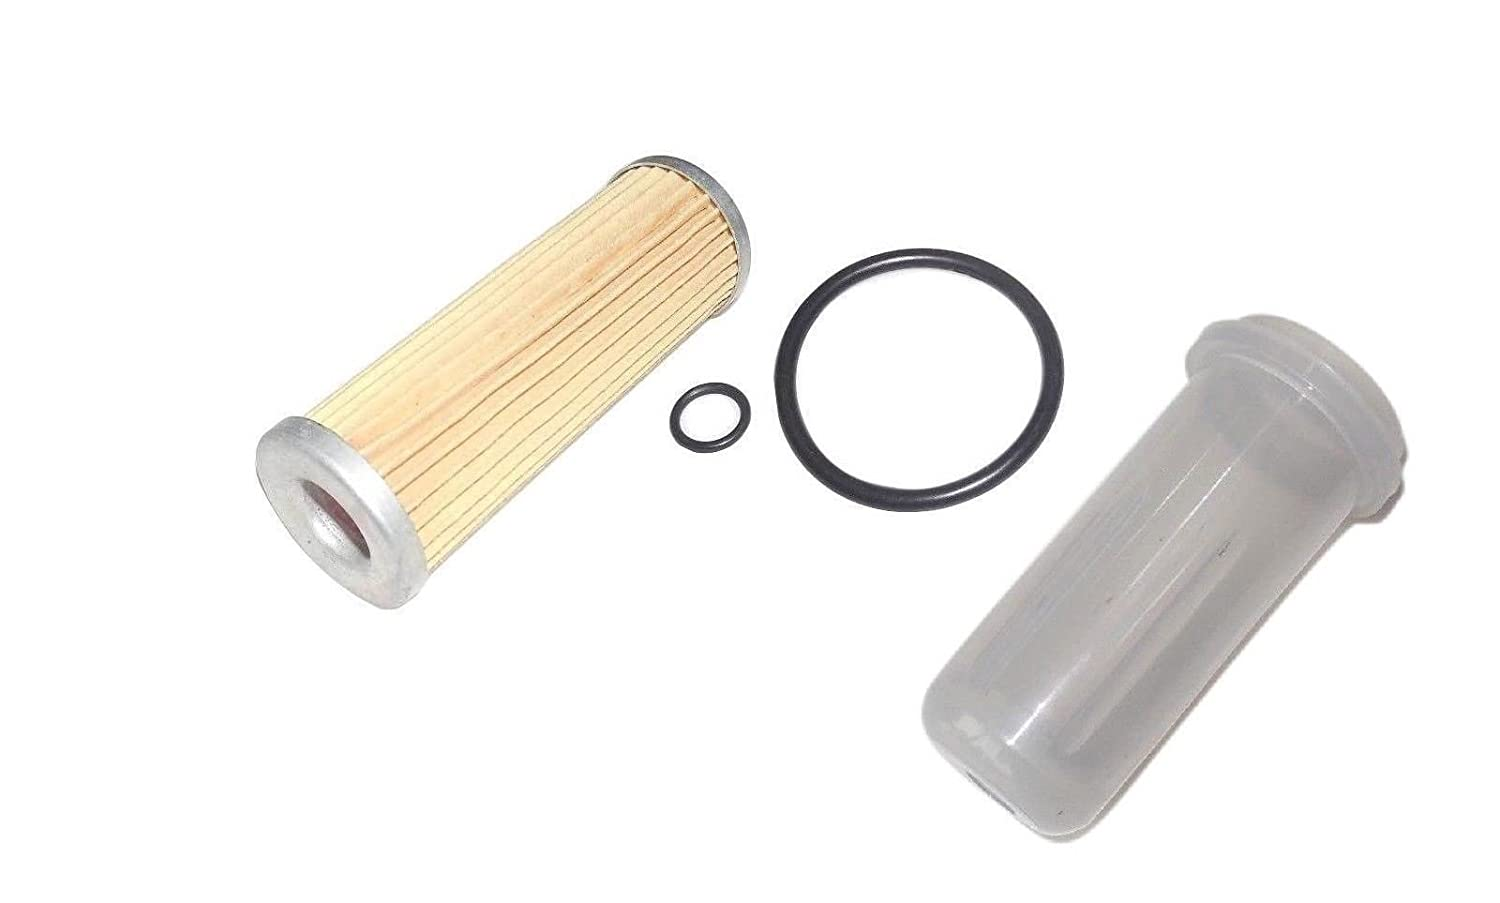 new kubota fuel filter with o ring \u0026 bowl b20 b21 b2100 b2150 b2400 b2710 Suzuki Fuel Filter